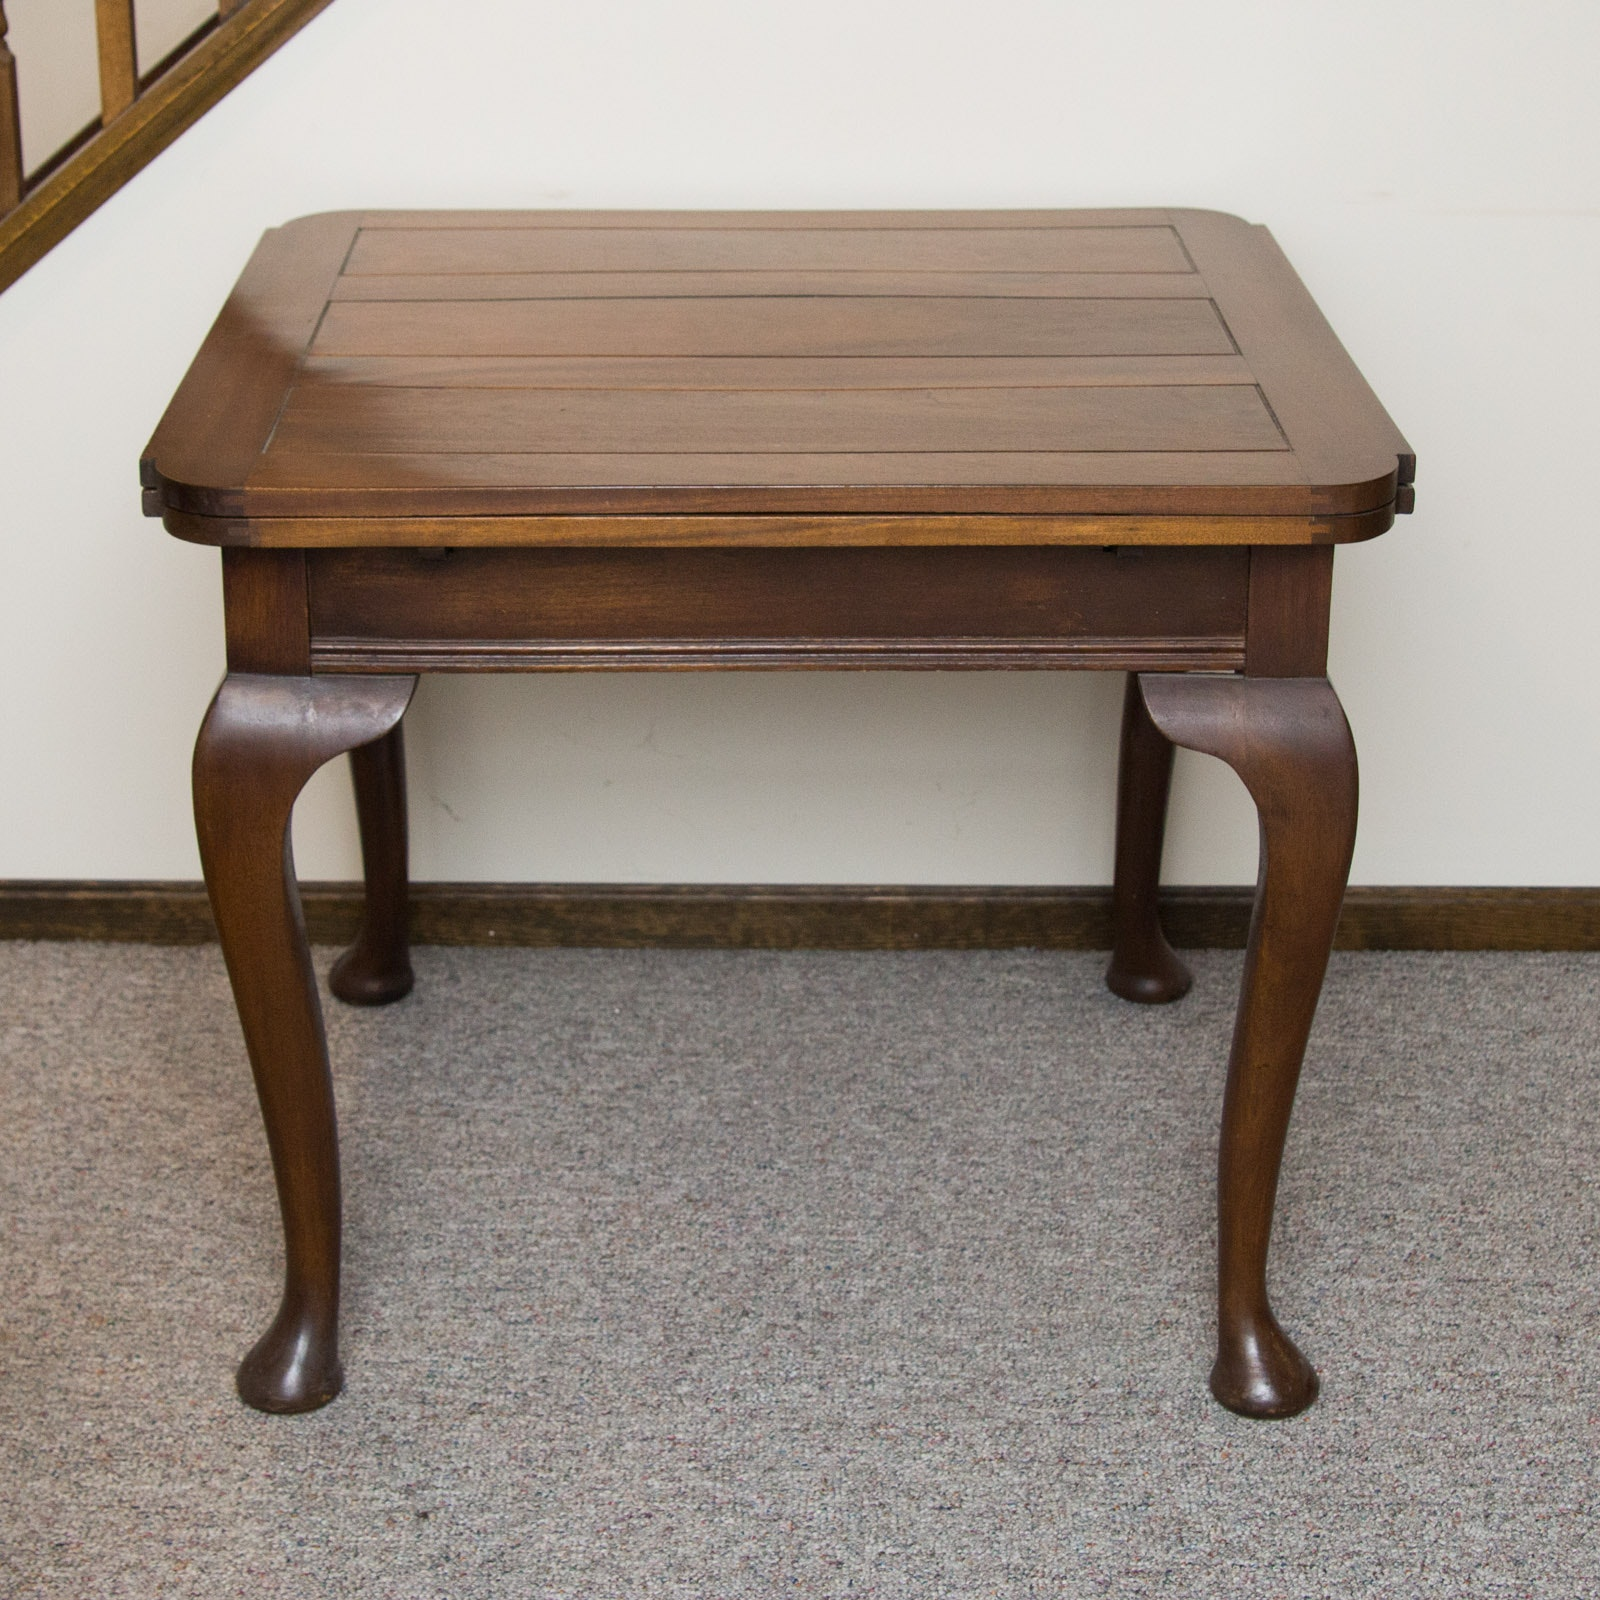 Vintage Wooden Side Table With Pull Out Leaves ...